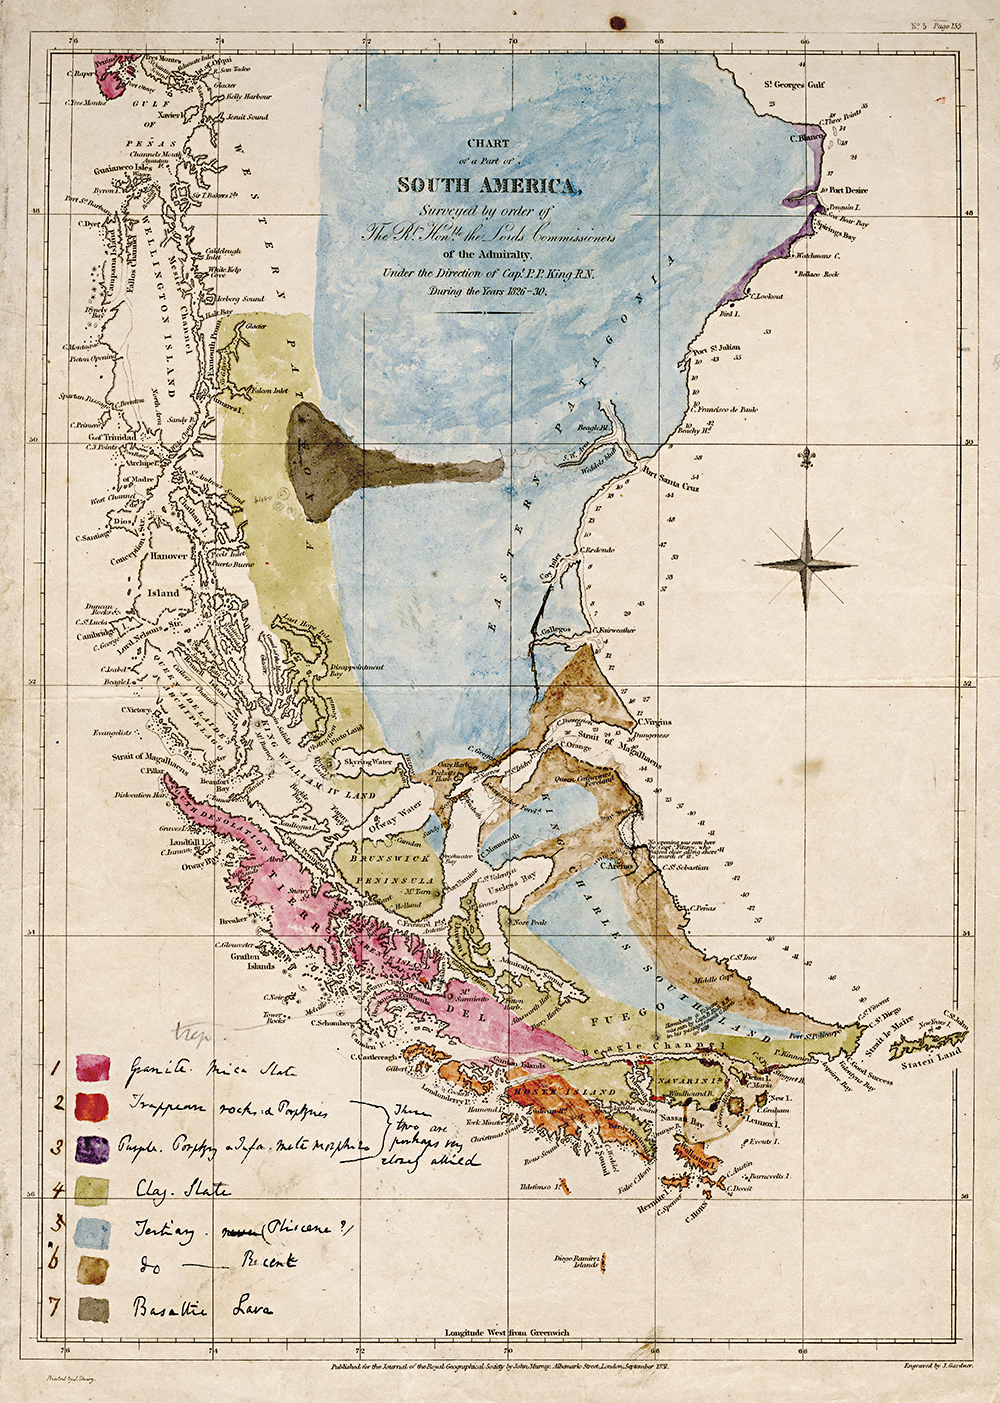 Darwin's hand-coloured geological map of islands off the South American coast